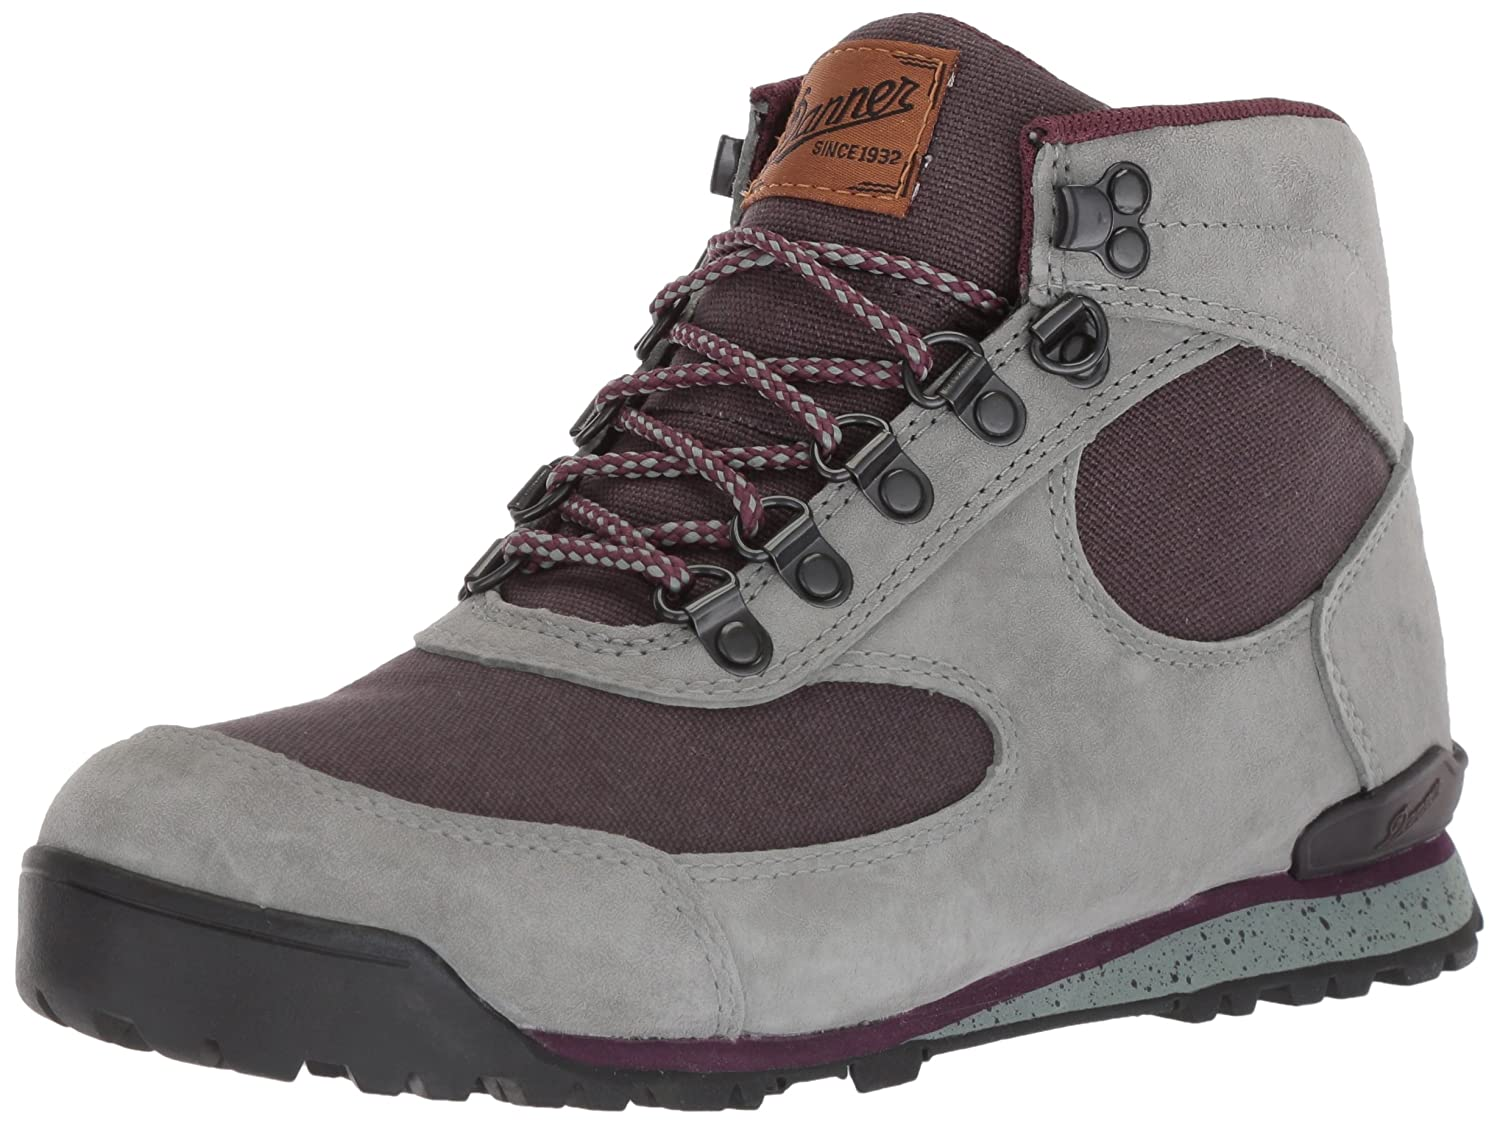 Danner Women's Jag-W's Fashion Boot B071ZZSRQ9 9.5 B(M) US|Dusty/Aubergine